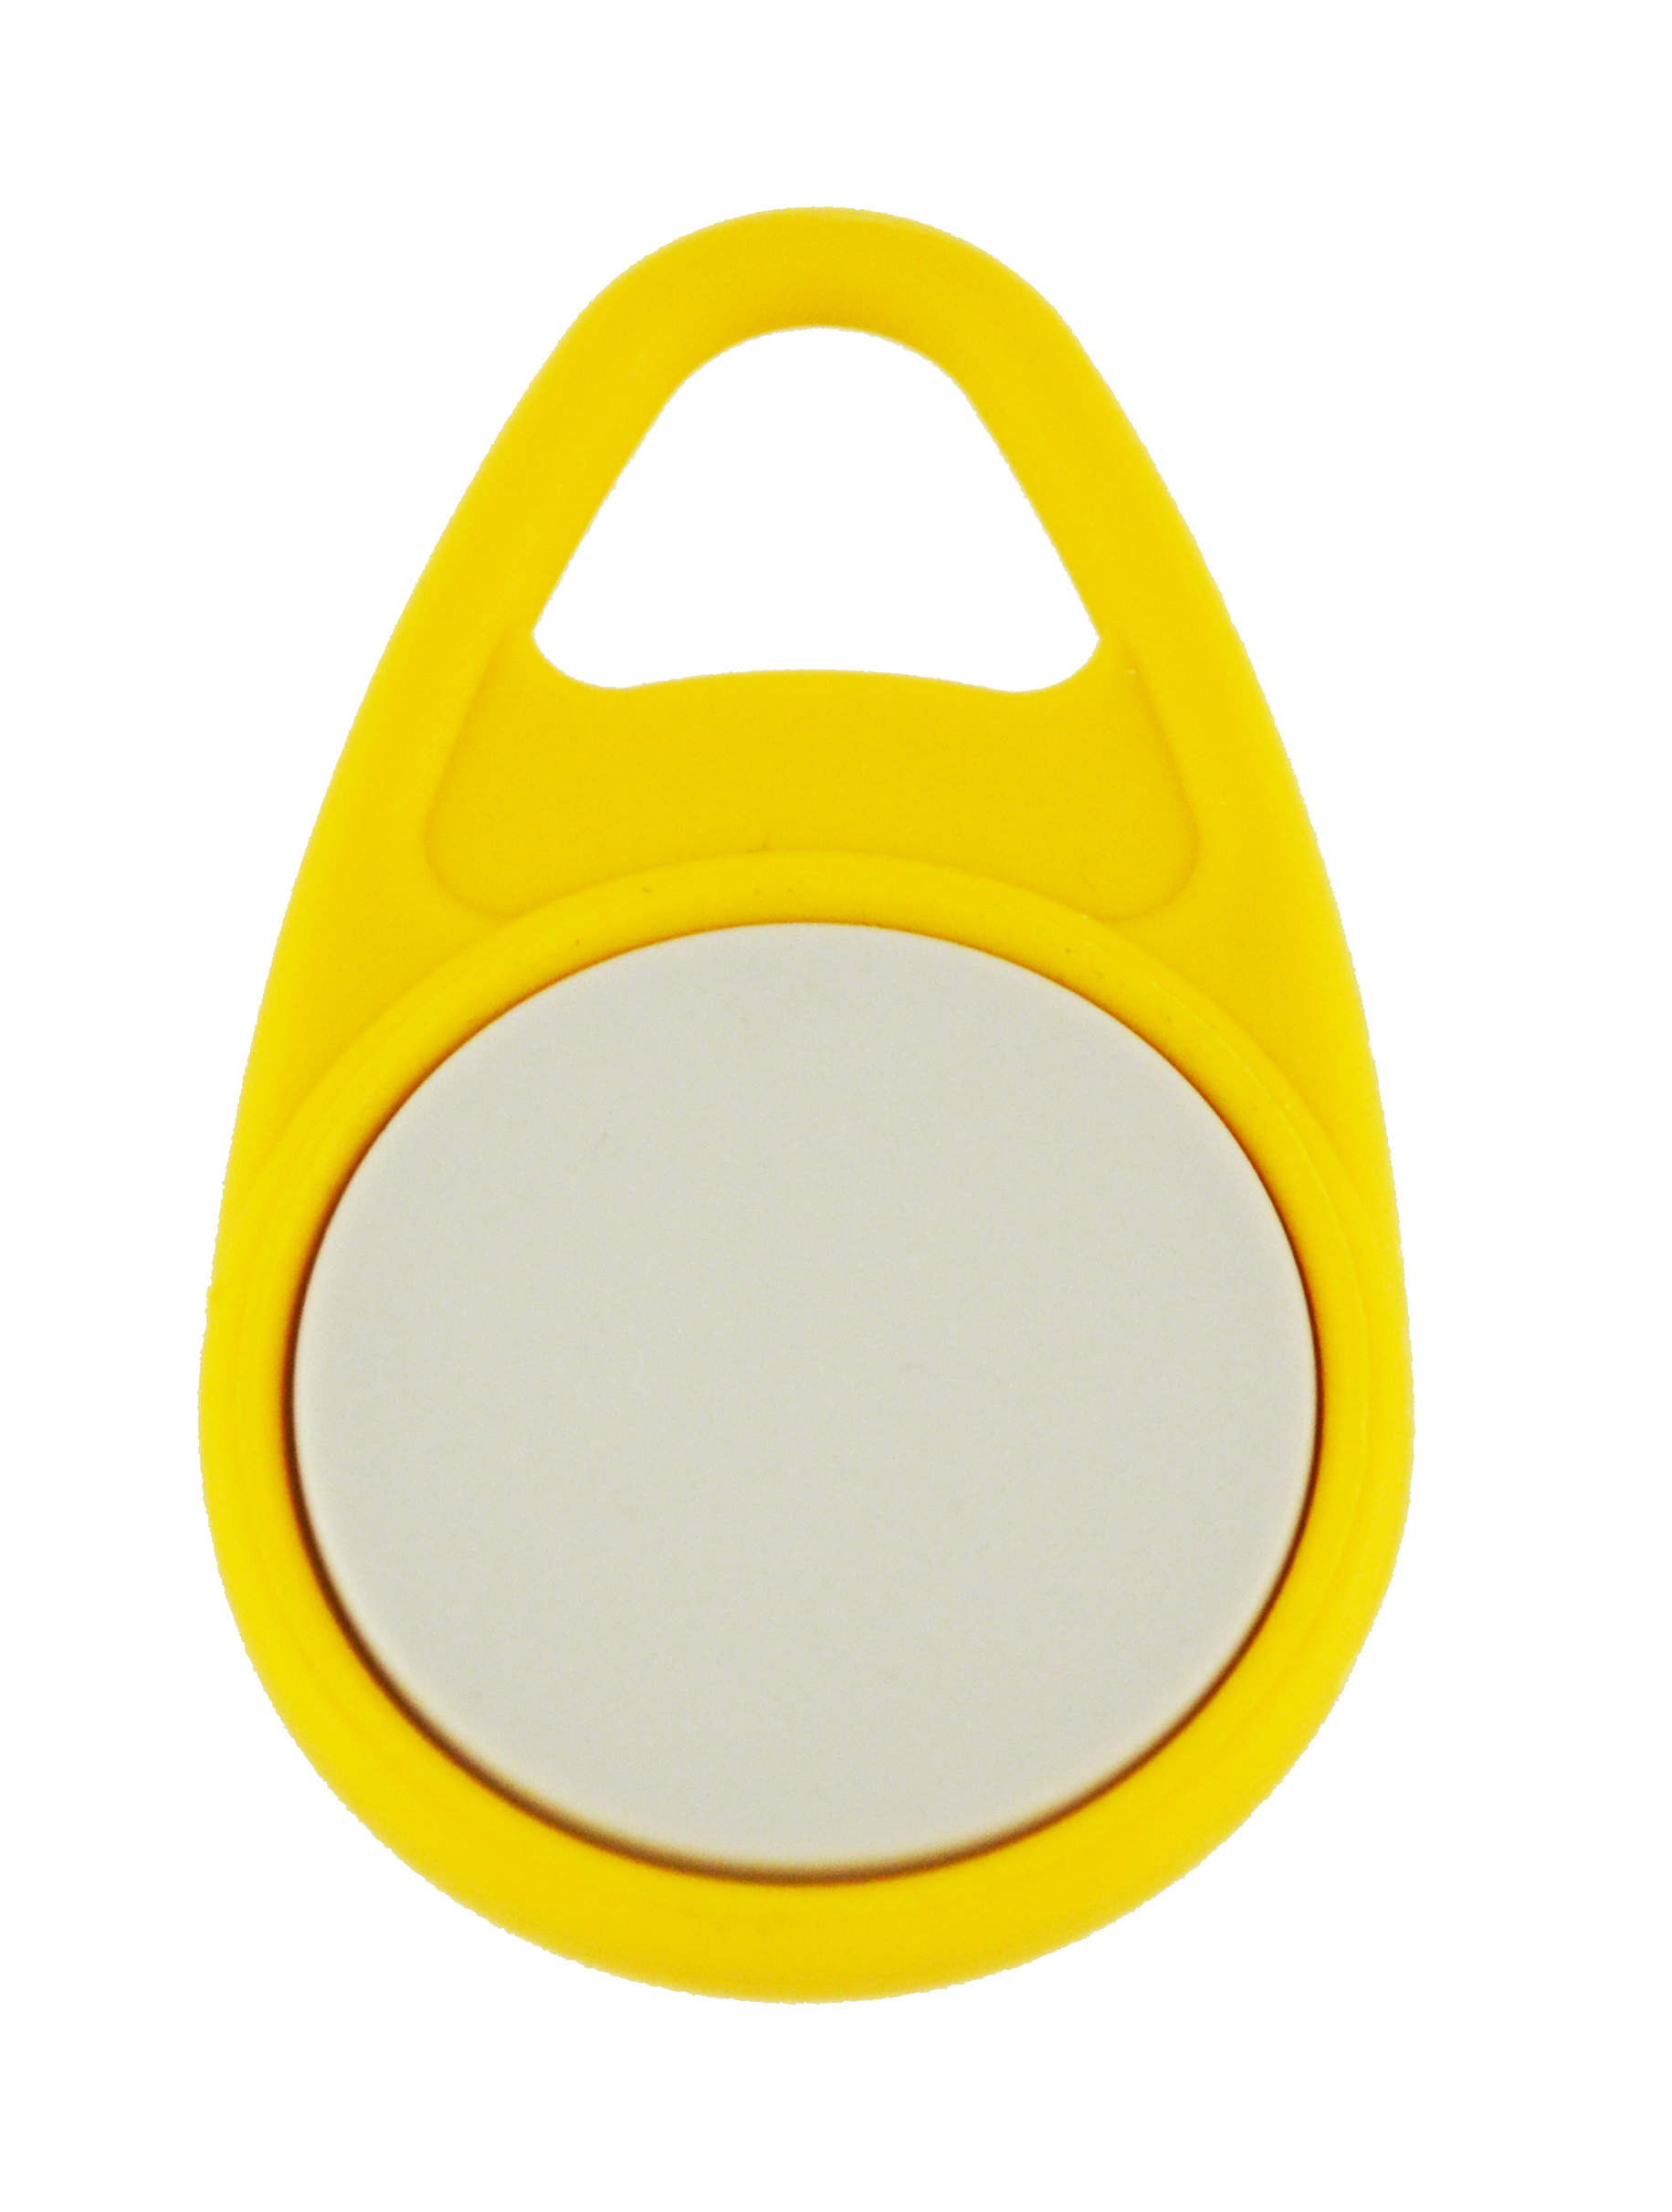 Keyfob Teardrop yellow